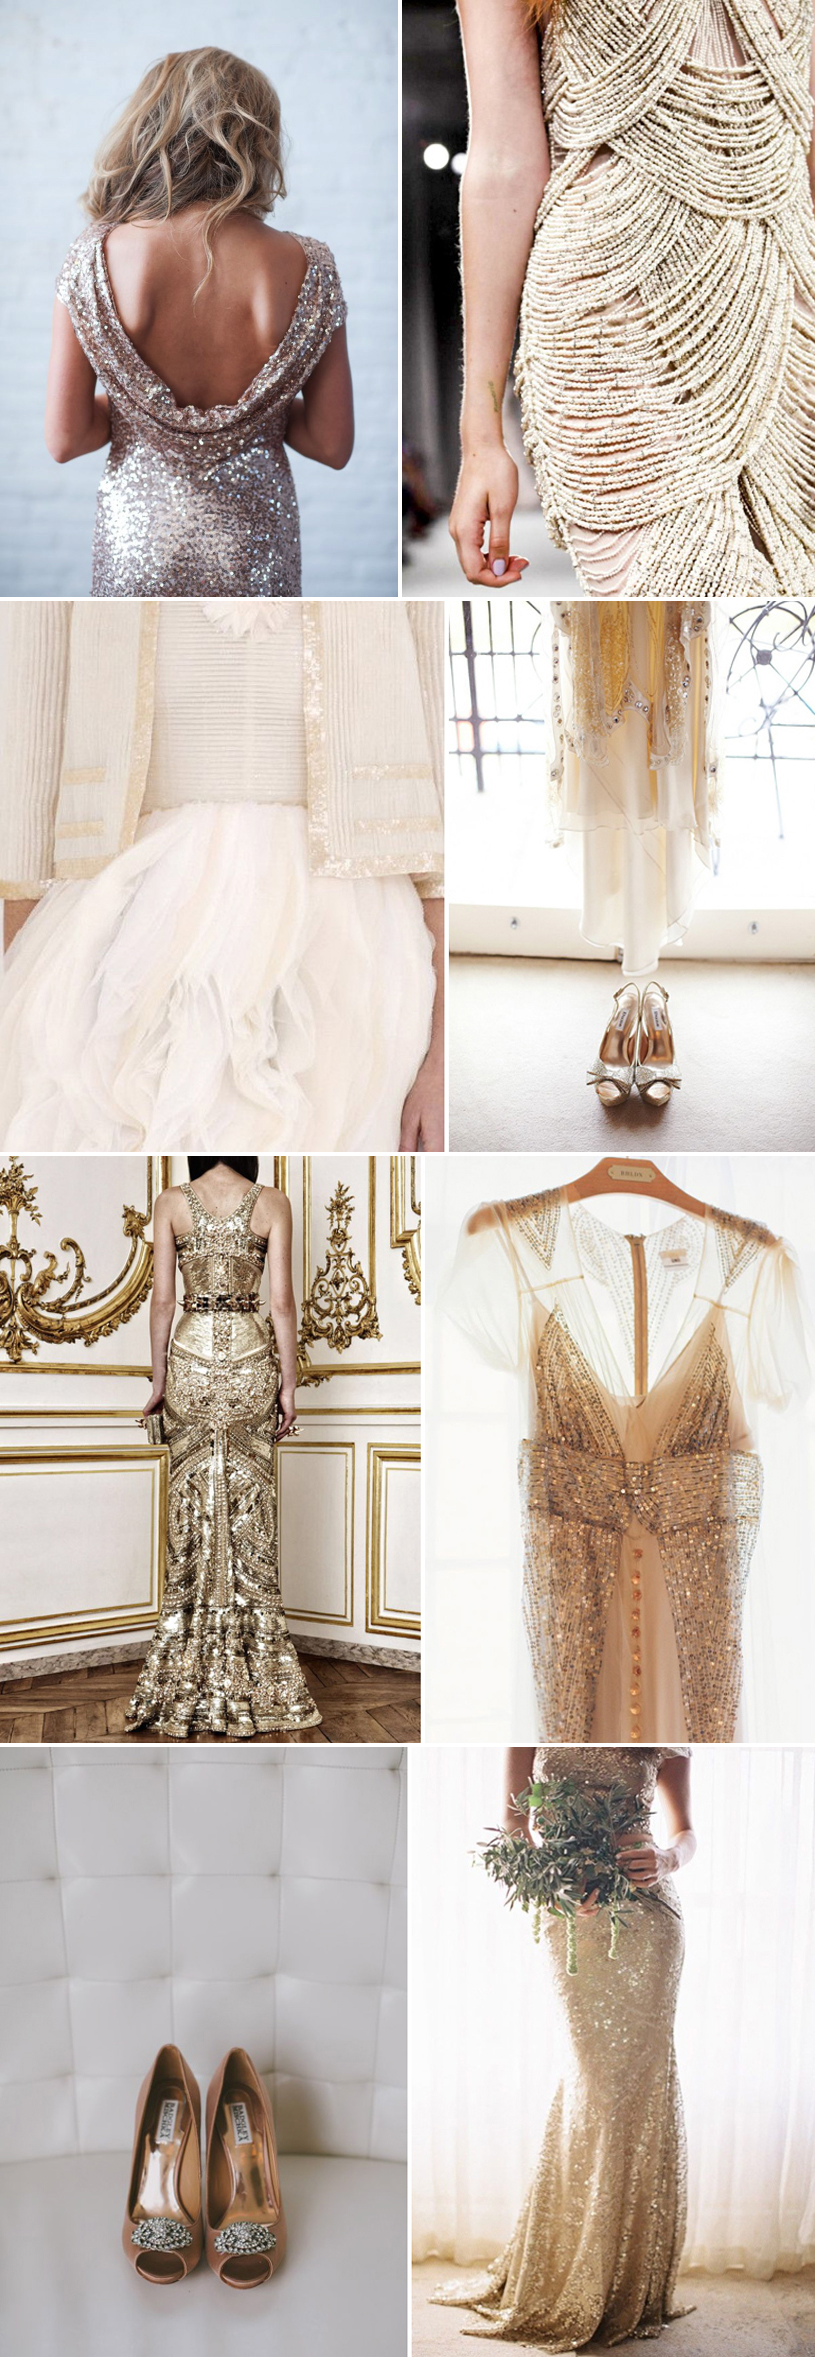 Coco Wedding Venues - Coco Colour Palette - Wedding Inspiration - Embellished Love - Bridal Inspiration.